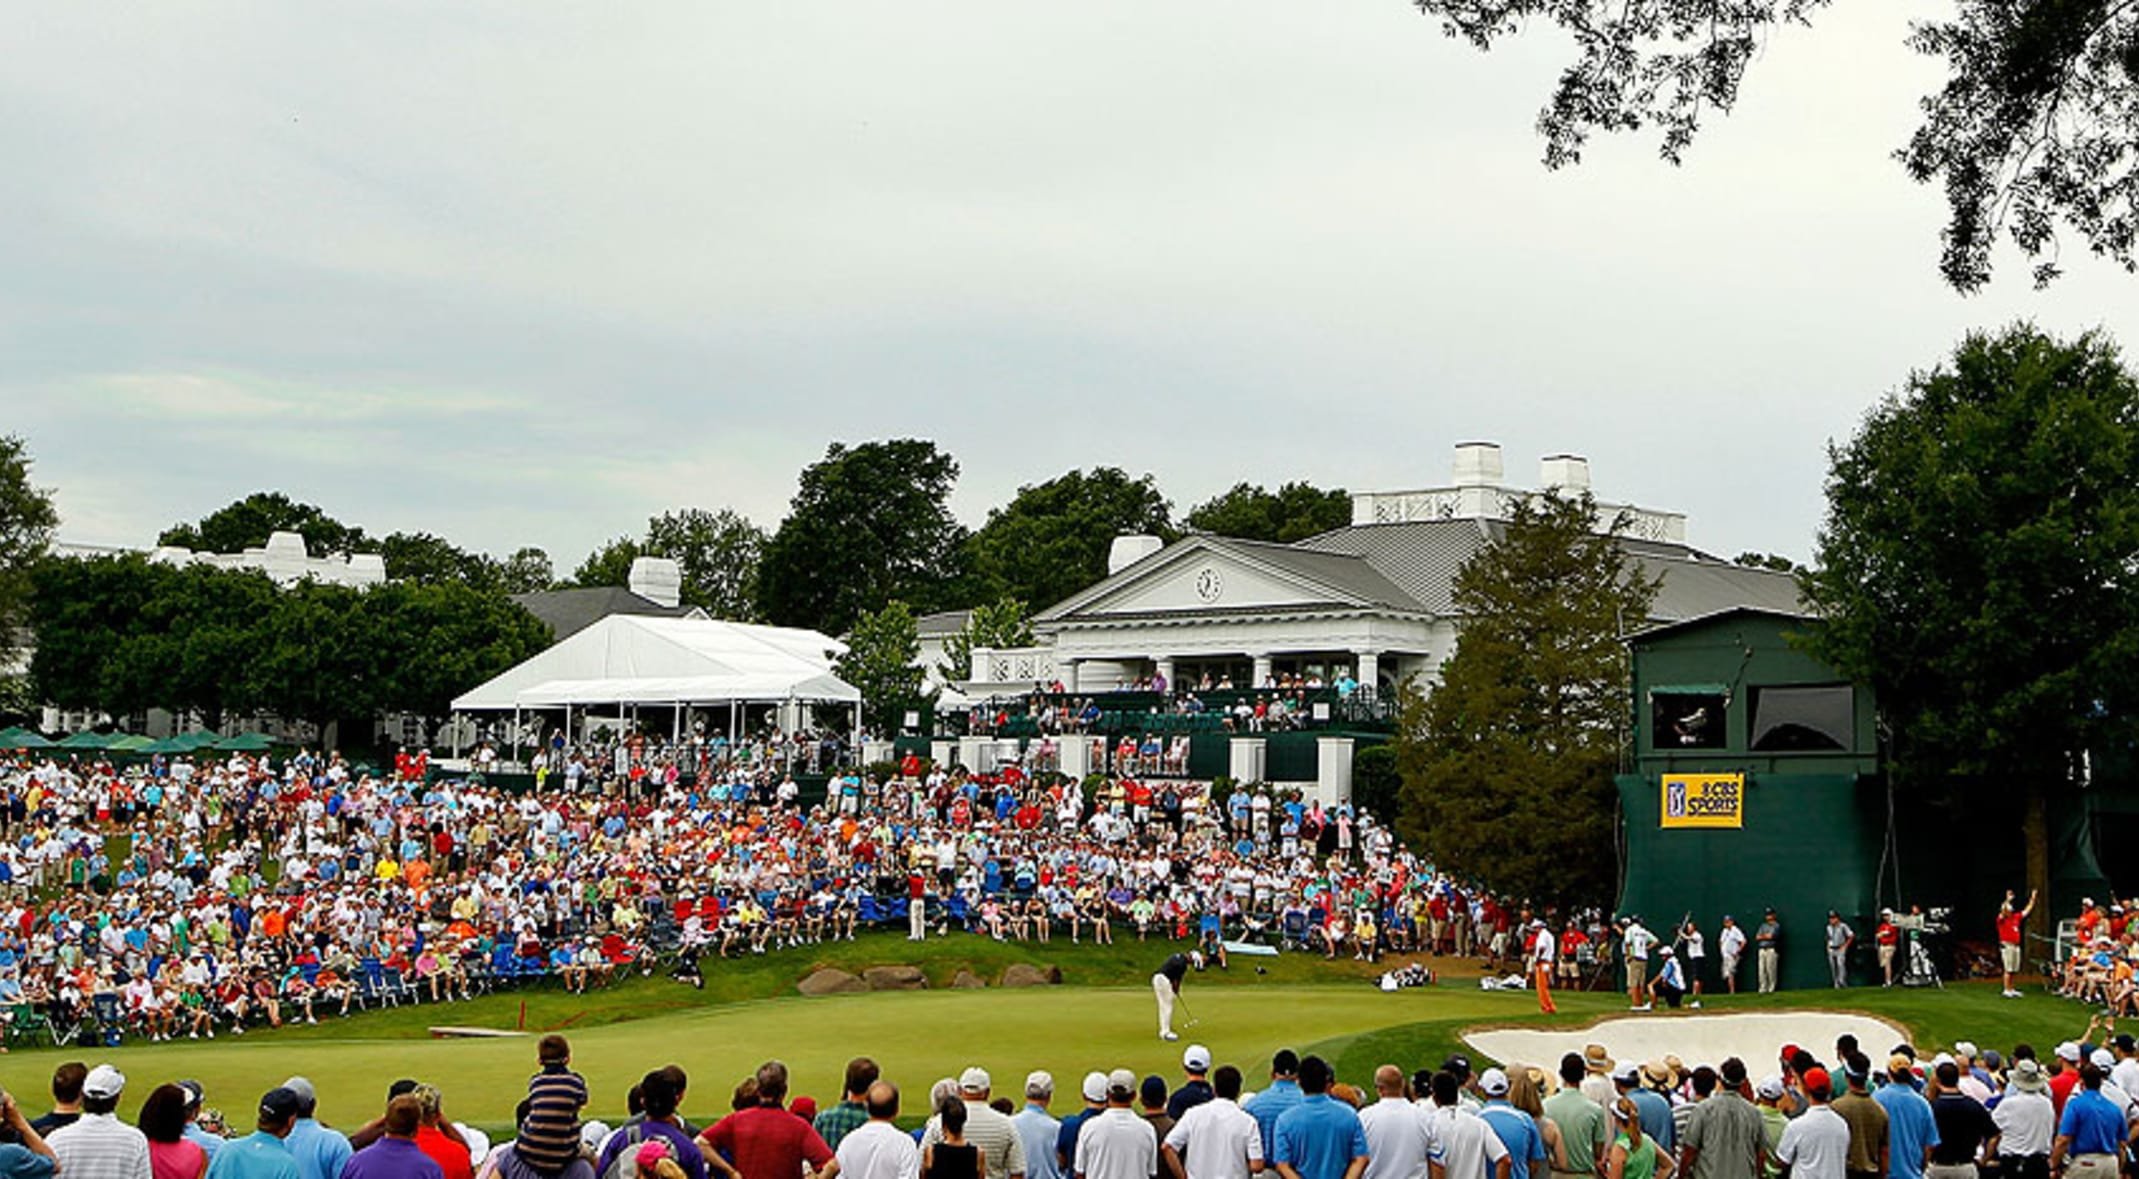 Wells Fargo extends sponsorship of Wells Fargo Championship